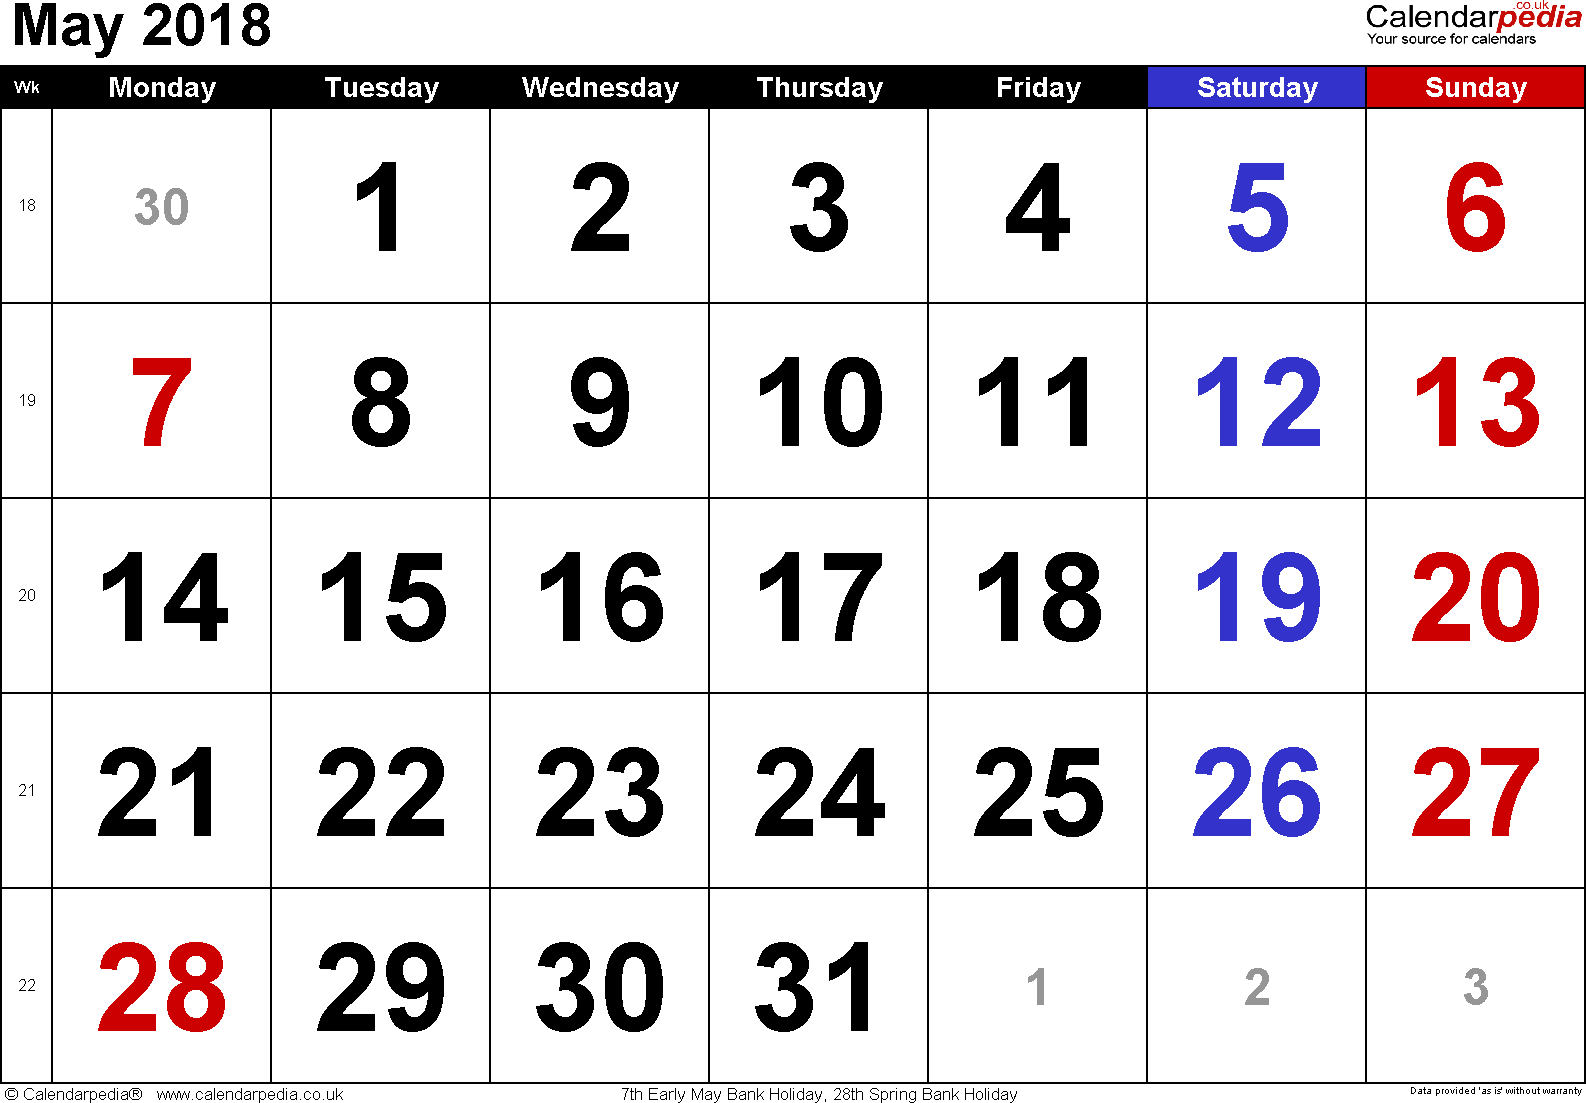 Calendar May 2018, landscape orientation, large numerals, 1 page, with UK bank holidays and week numbers